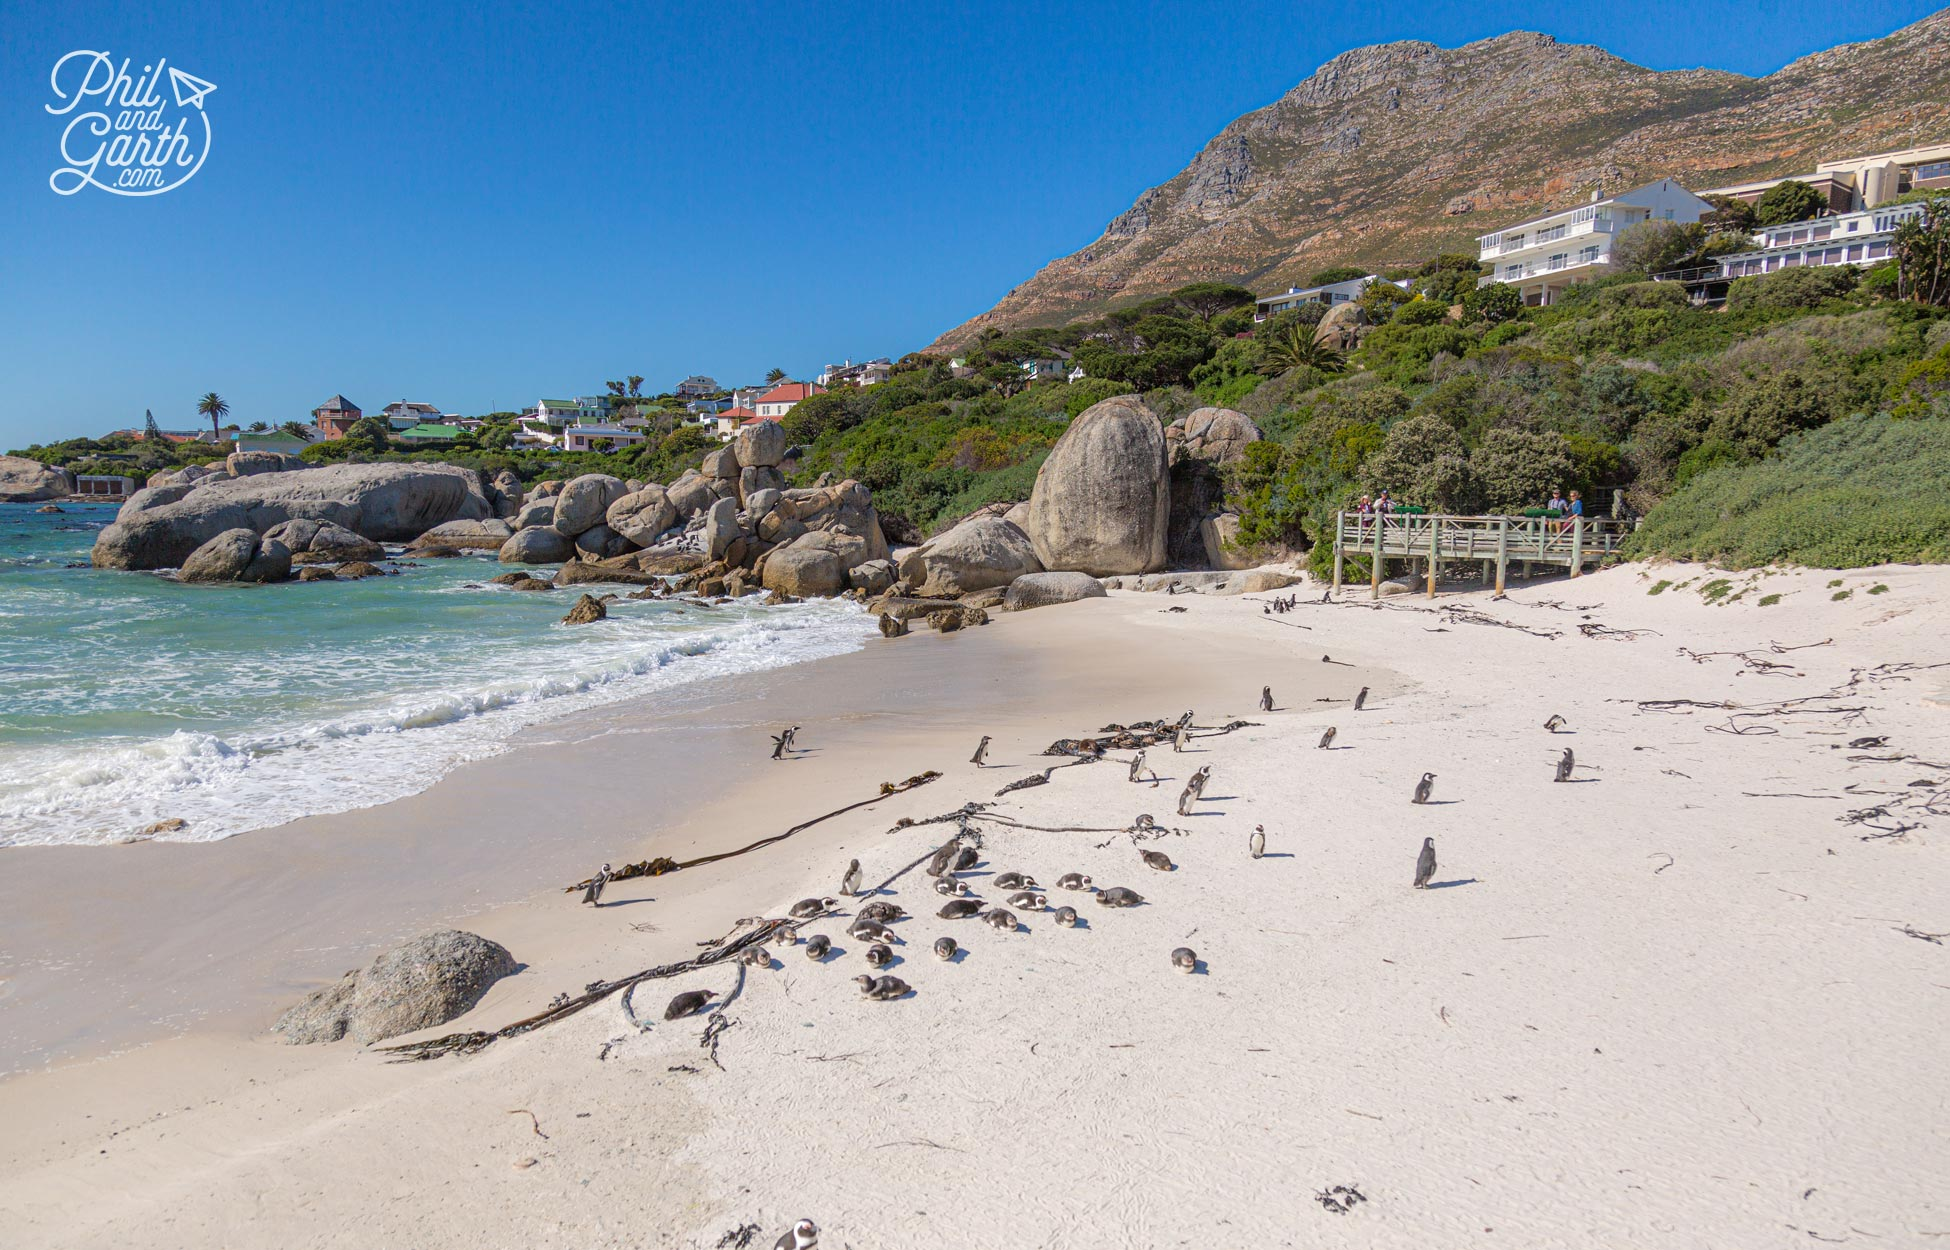 As seen from the viewing platform - Foxy Beach home to the endangered African Penguins